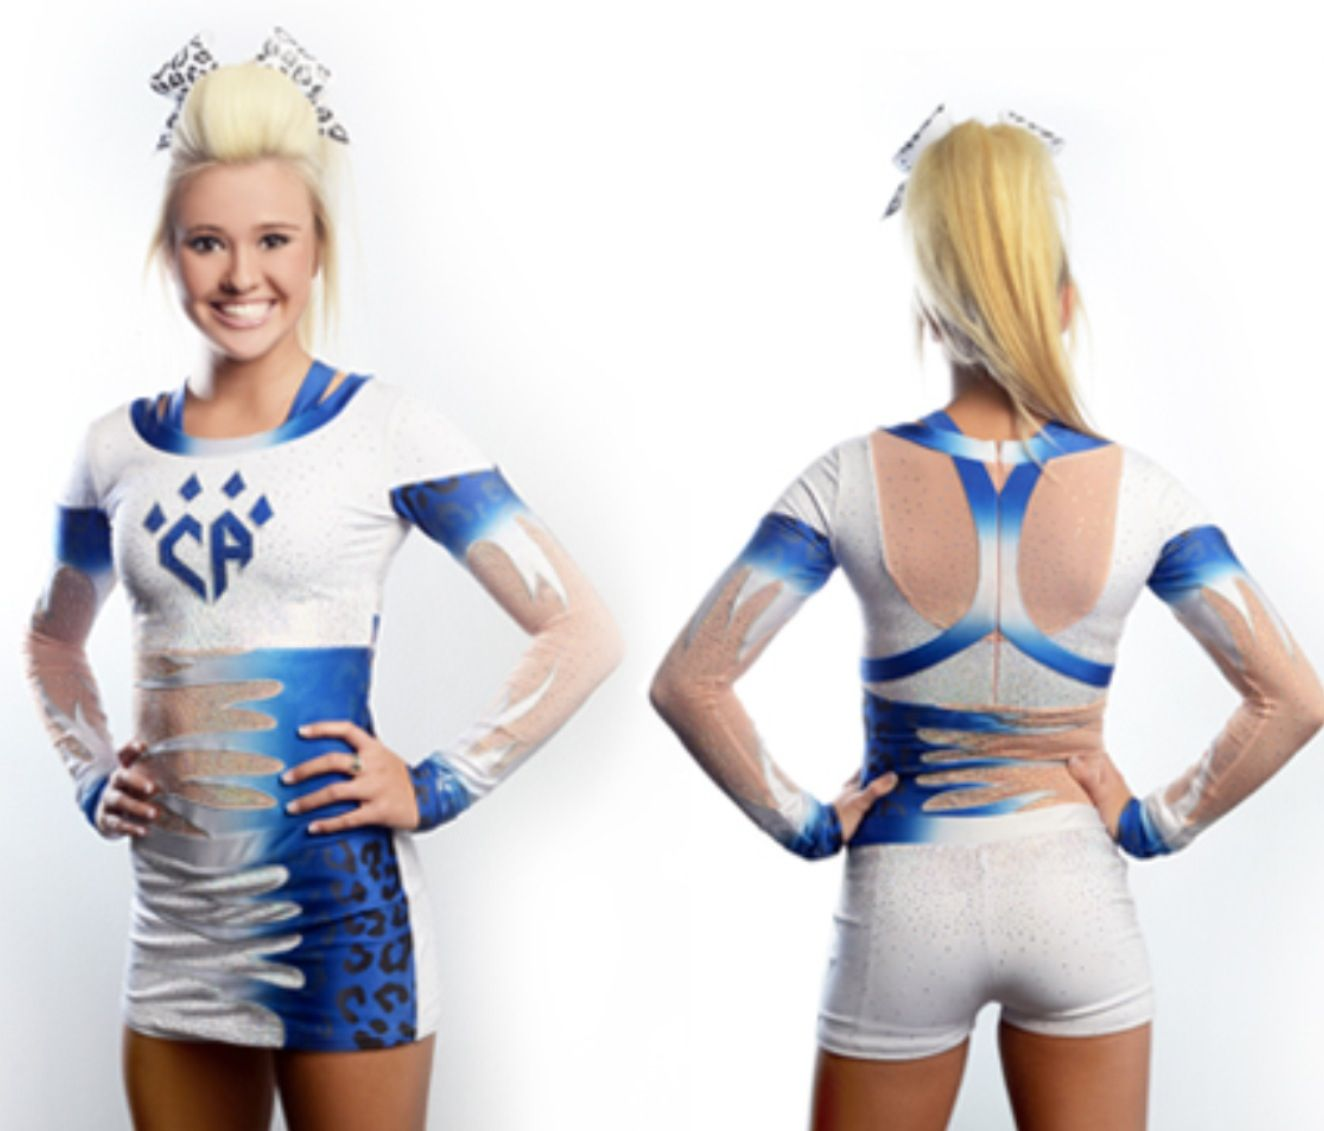 Jamie Andries in Cheer Athletics Cheetahs' new uniform ...